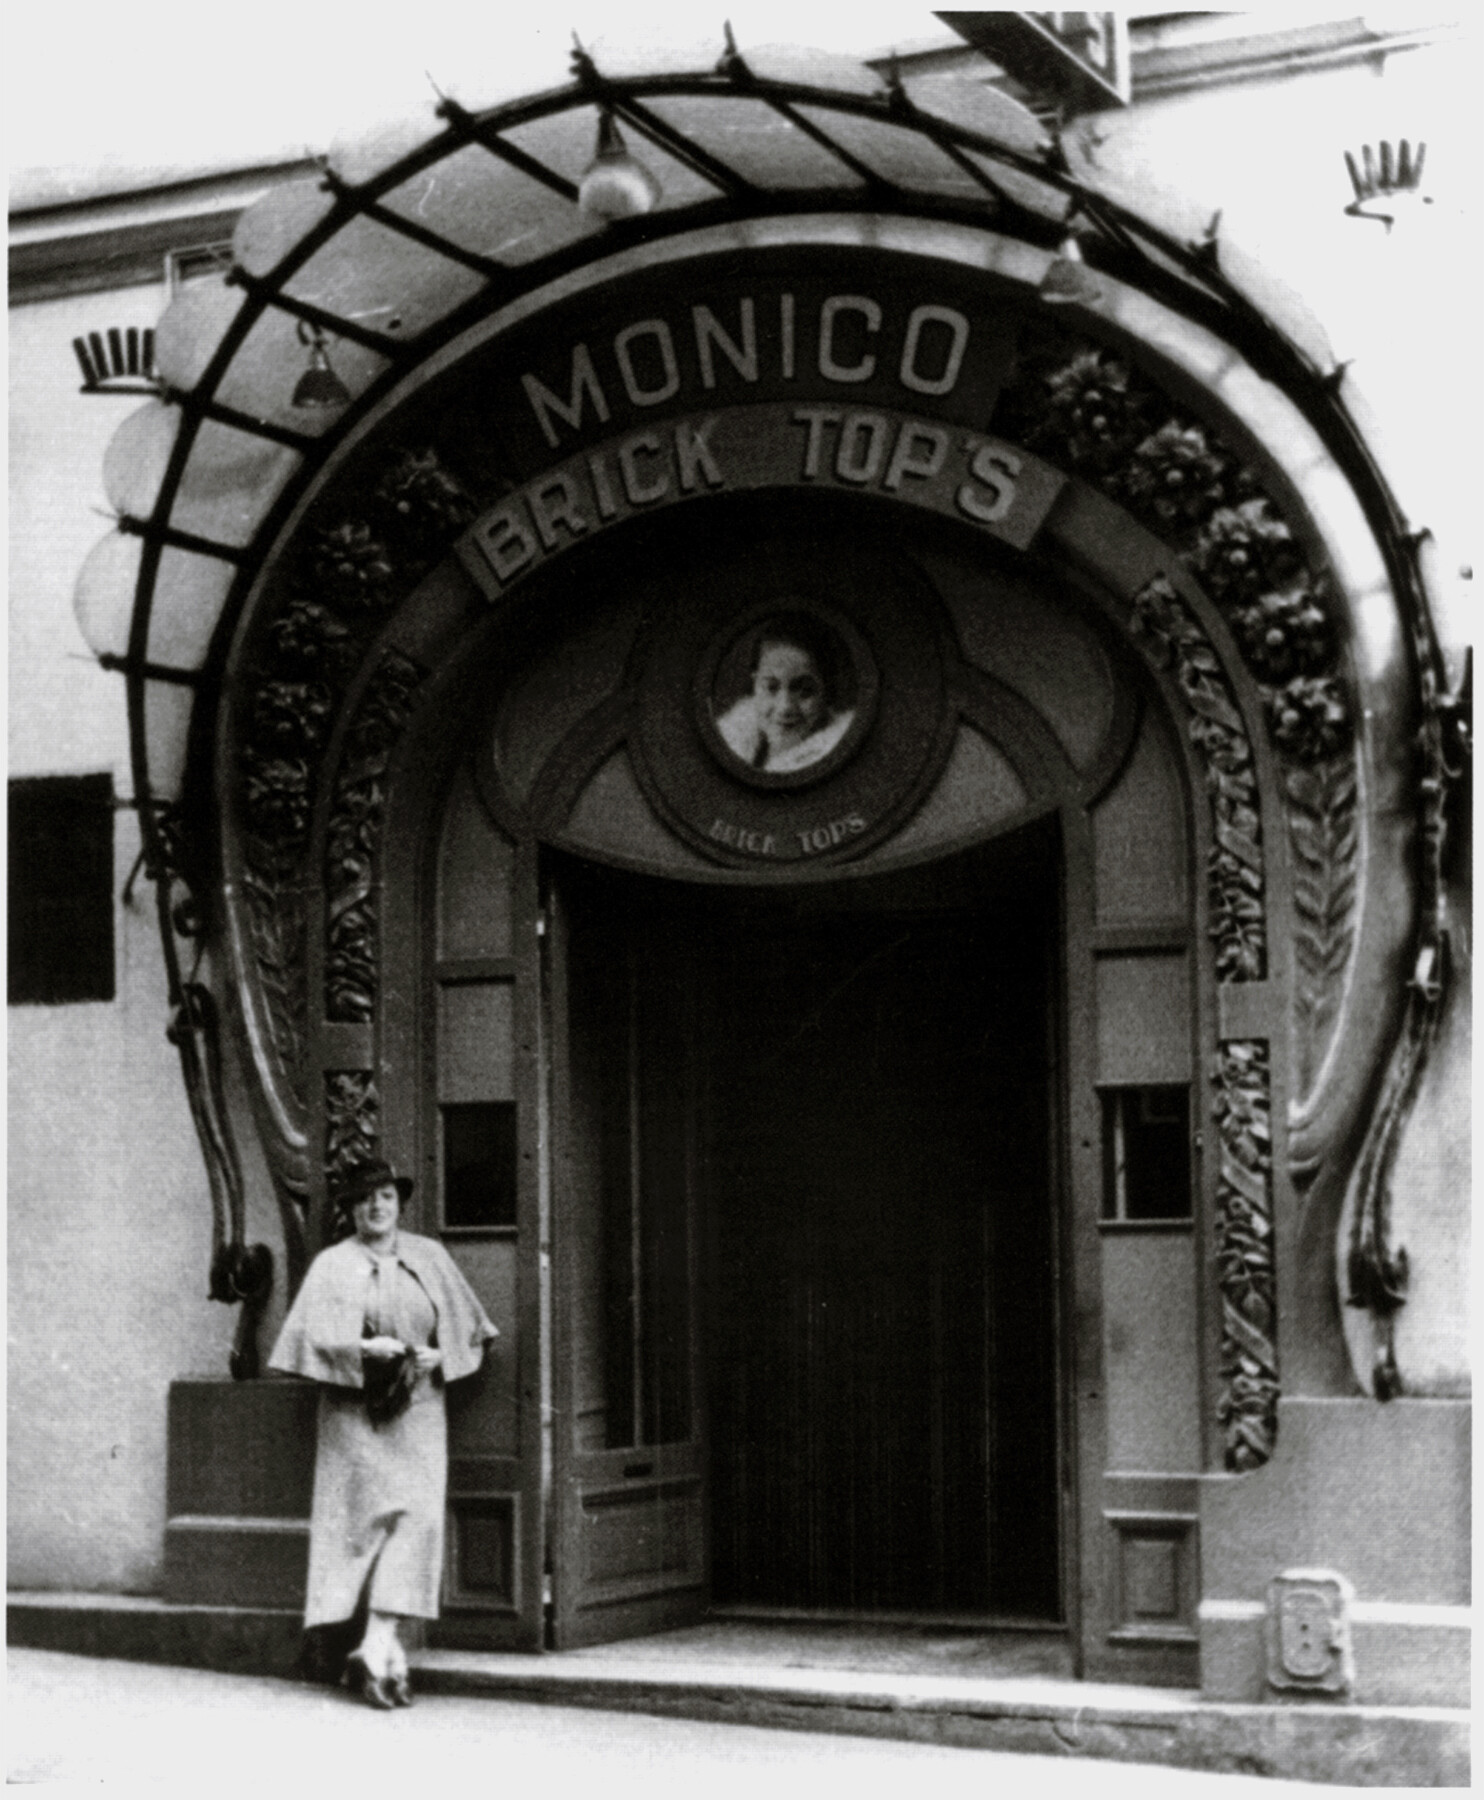 Bricktop_Monicos Entrance